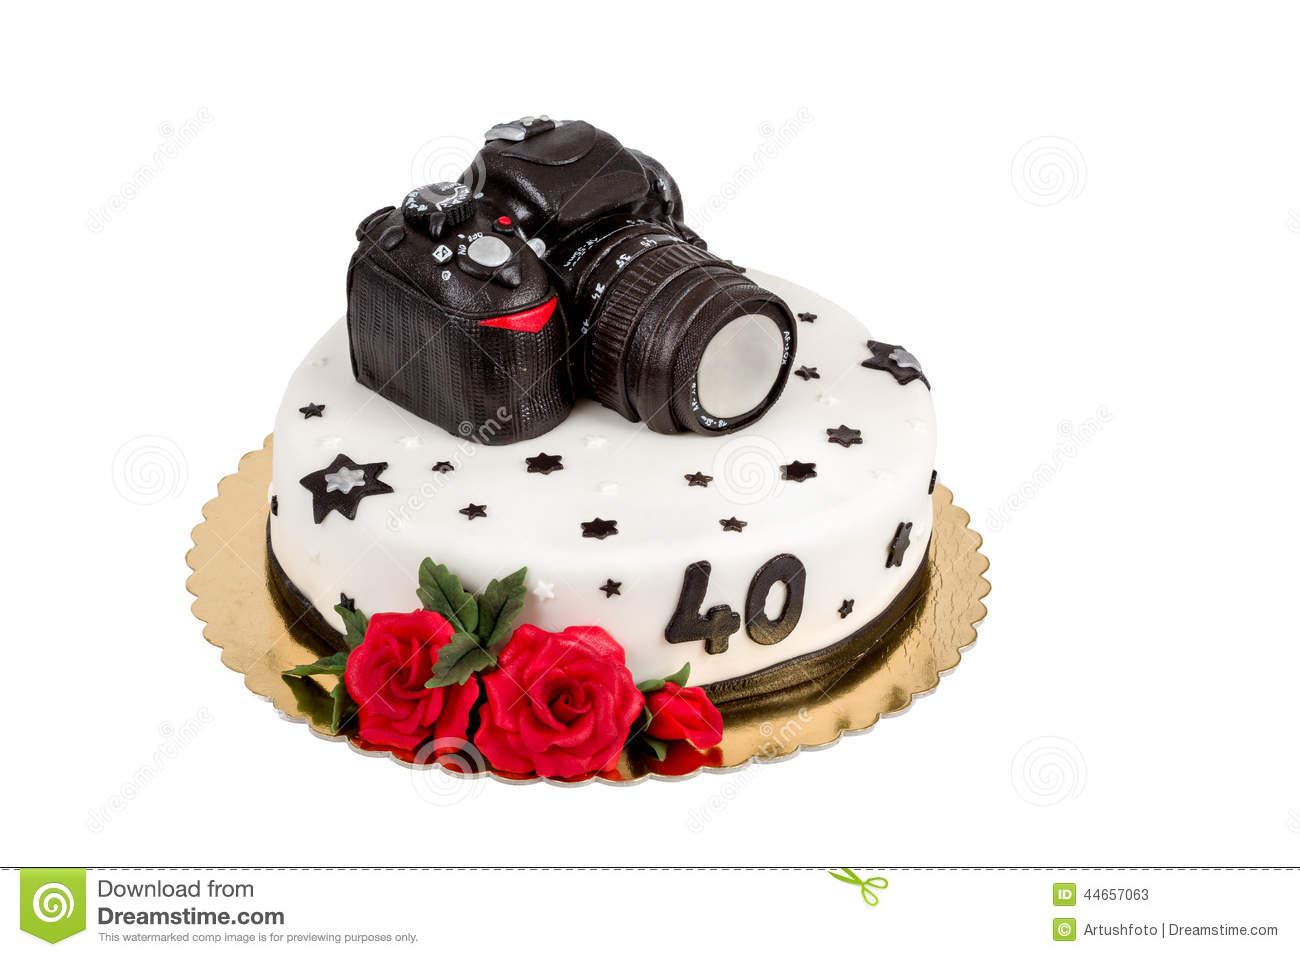 Canon Camera Cake Images